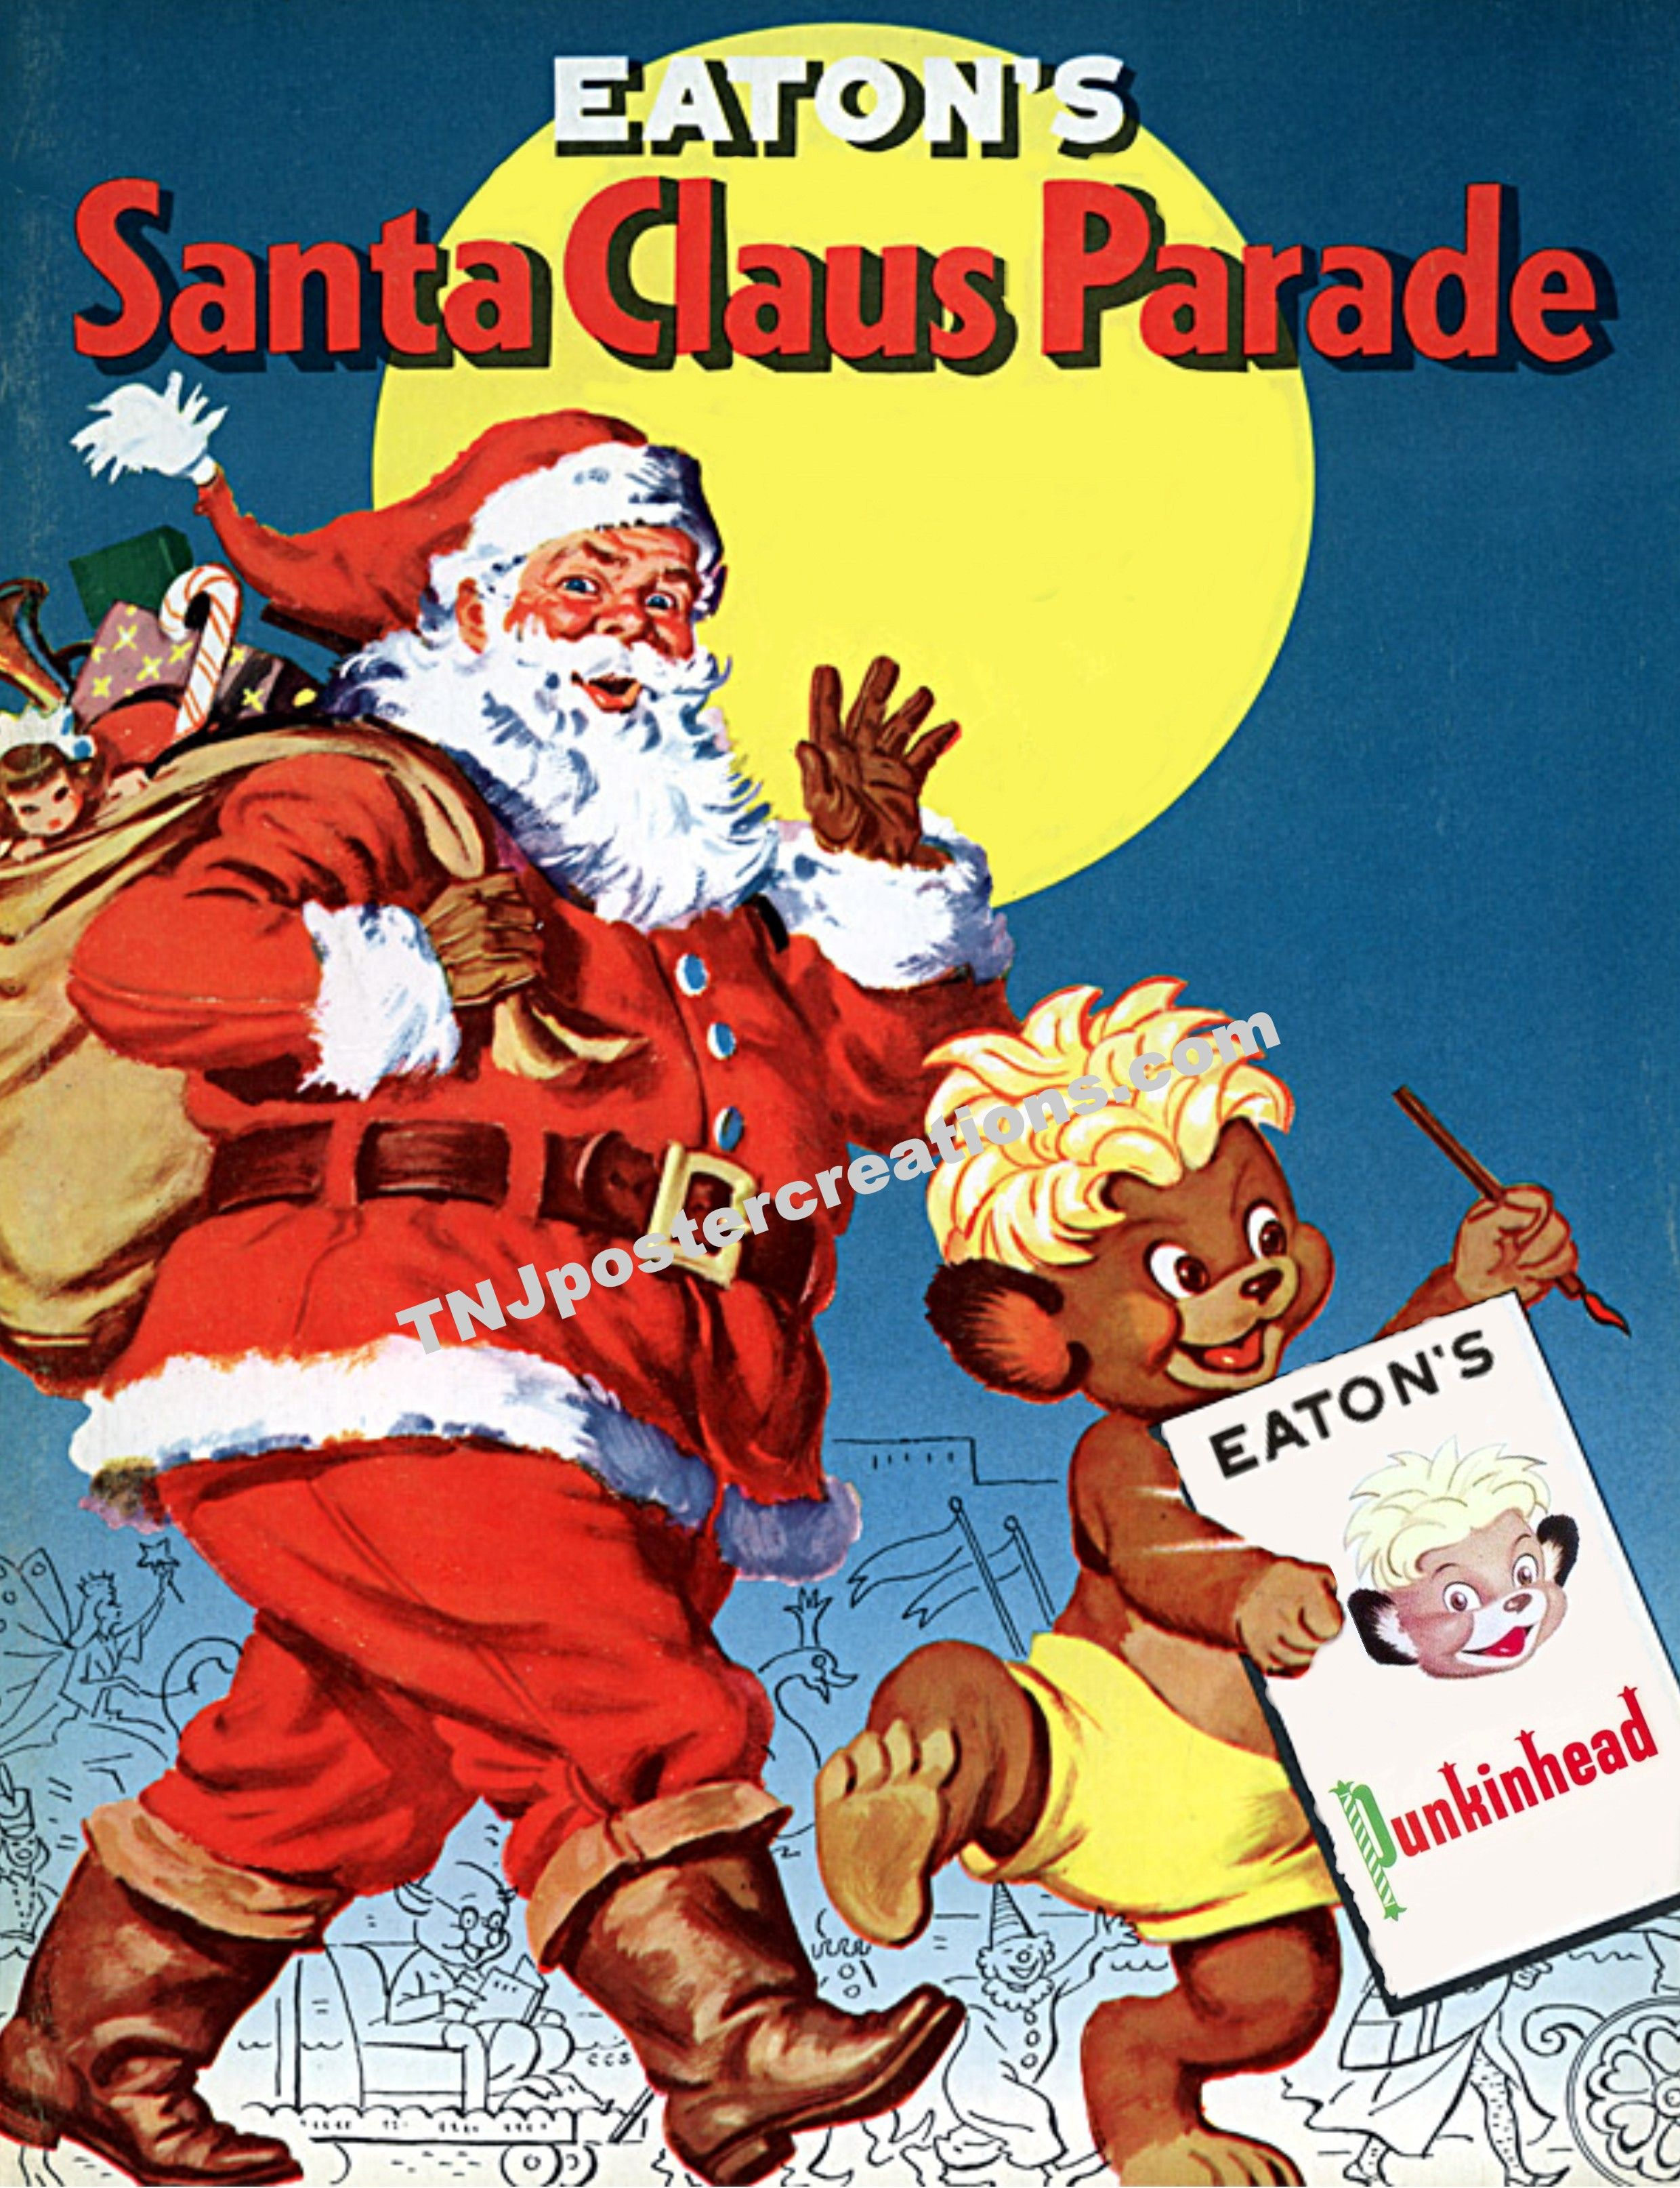 The biggest Christmas parade ever was the Santa Claus